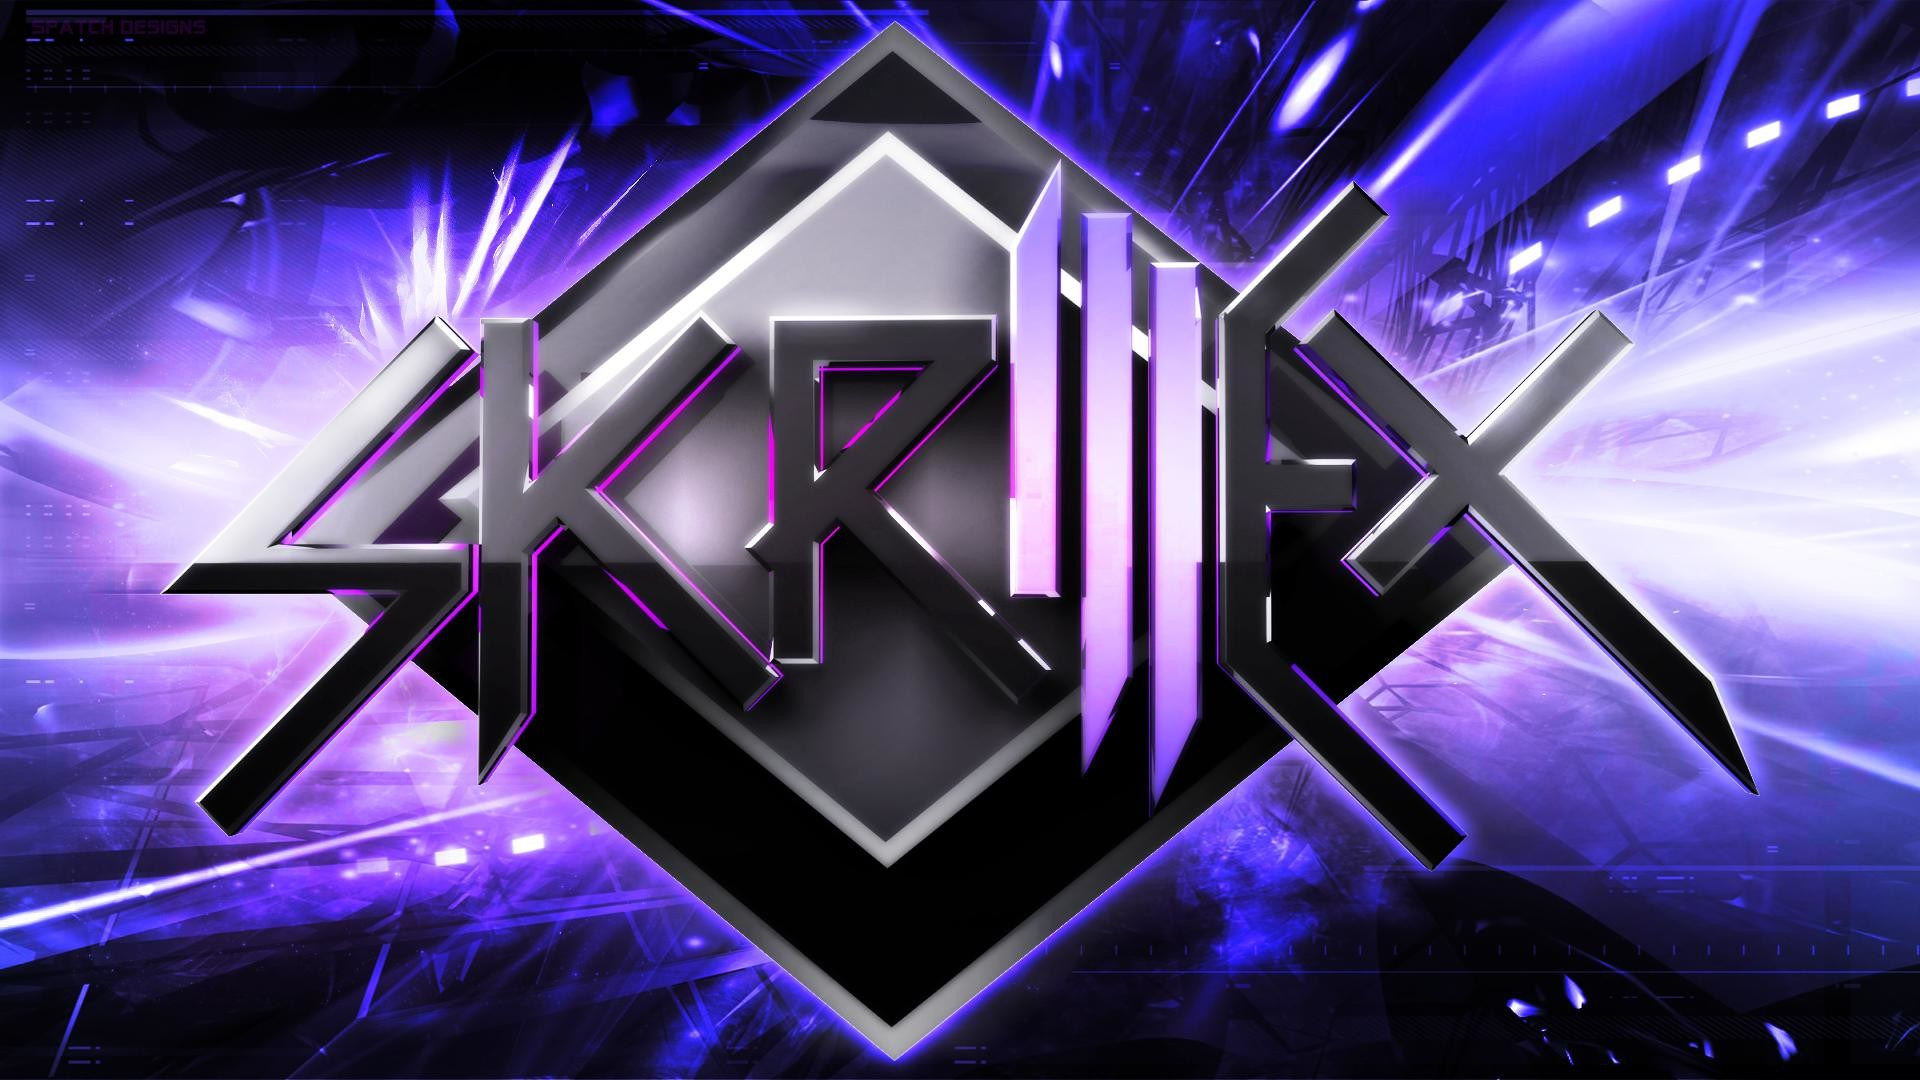 Download 3D Skrillex HD live wallpaper for android, 3D Skrillex HD